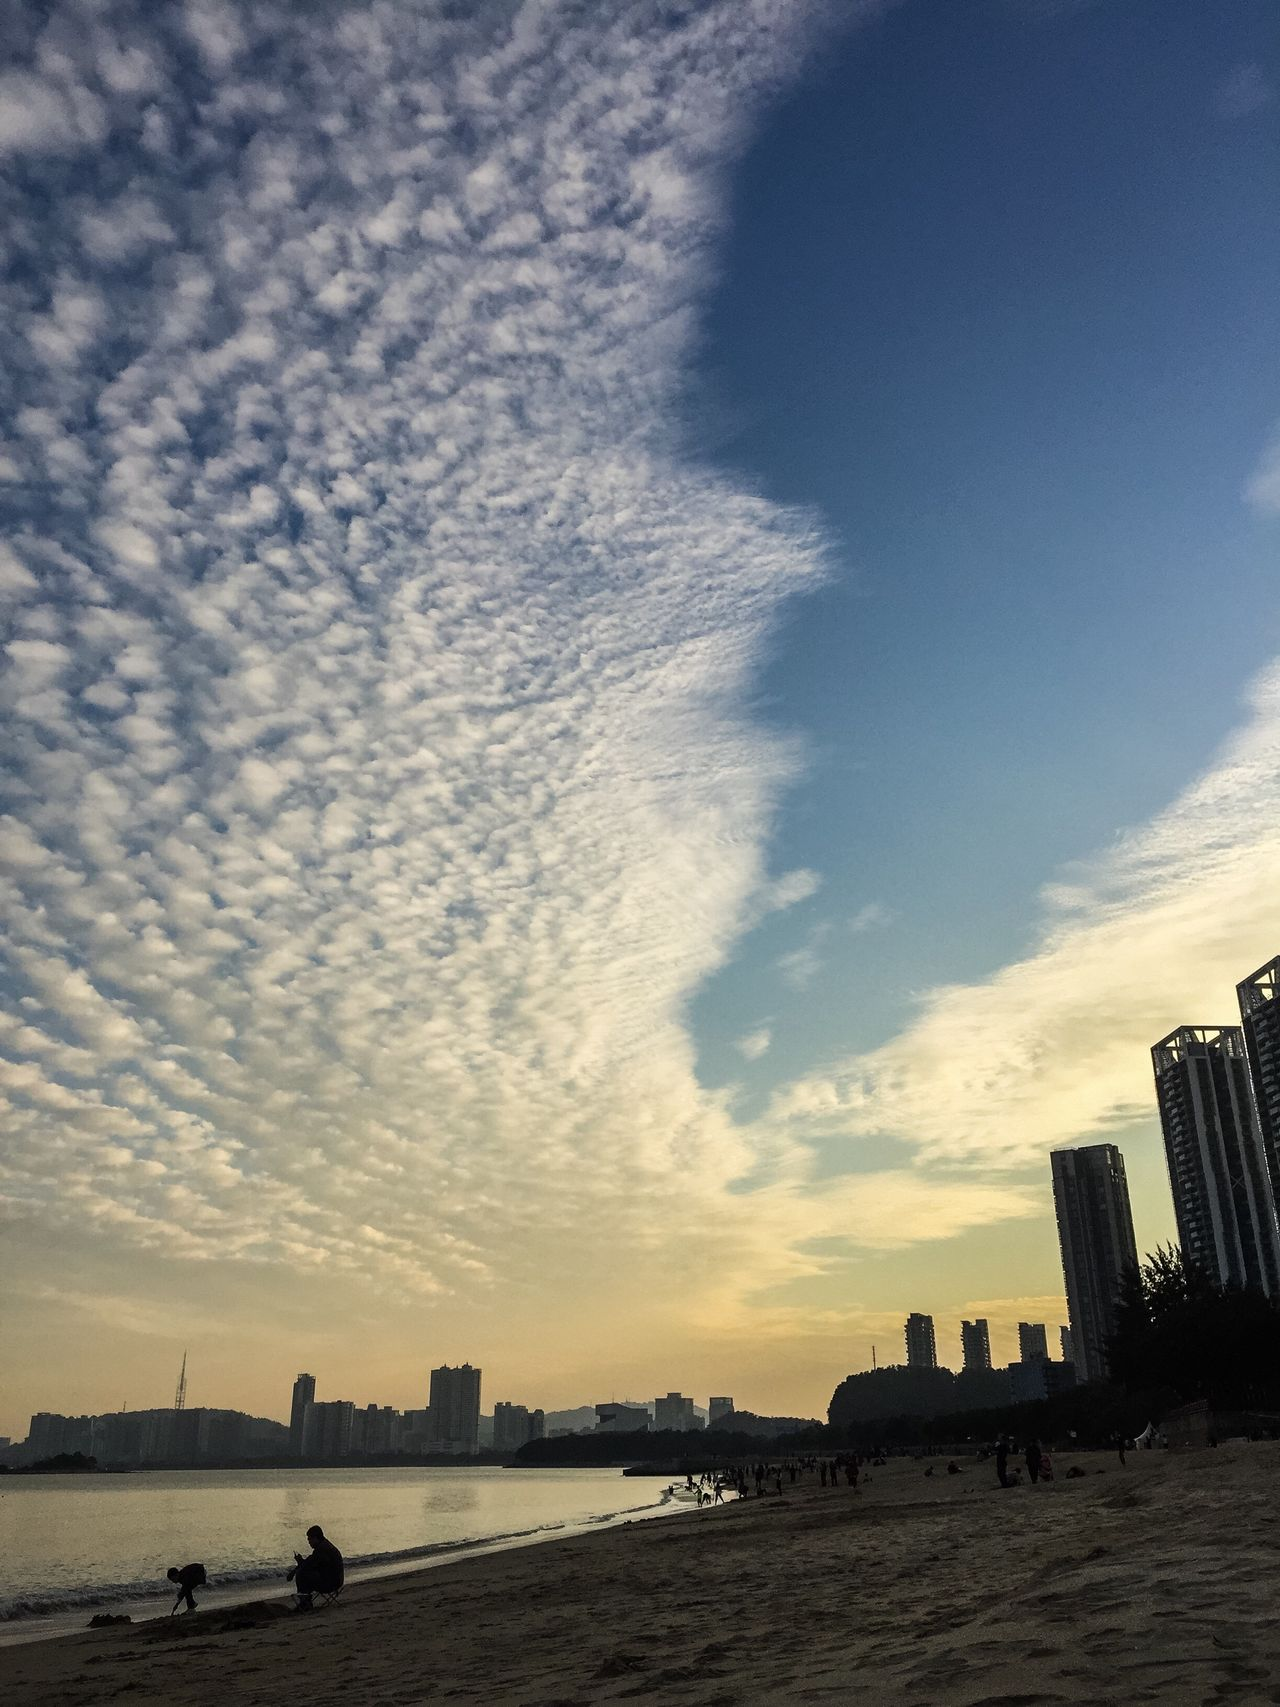 Sky Architecture Building Exterior Built Structure City Cloud - Sky Outdoors No People Day Water Nature Skyscraper Cityscape Beach BEIJING北京CHINA中国BEAUTY Zhuhai Holiday